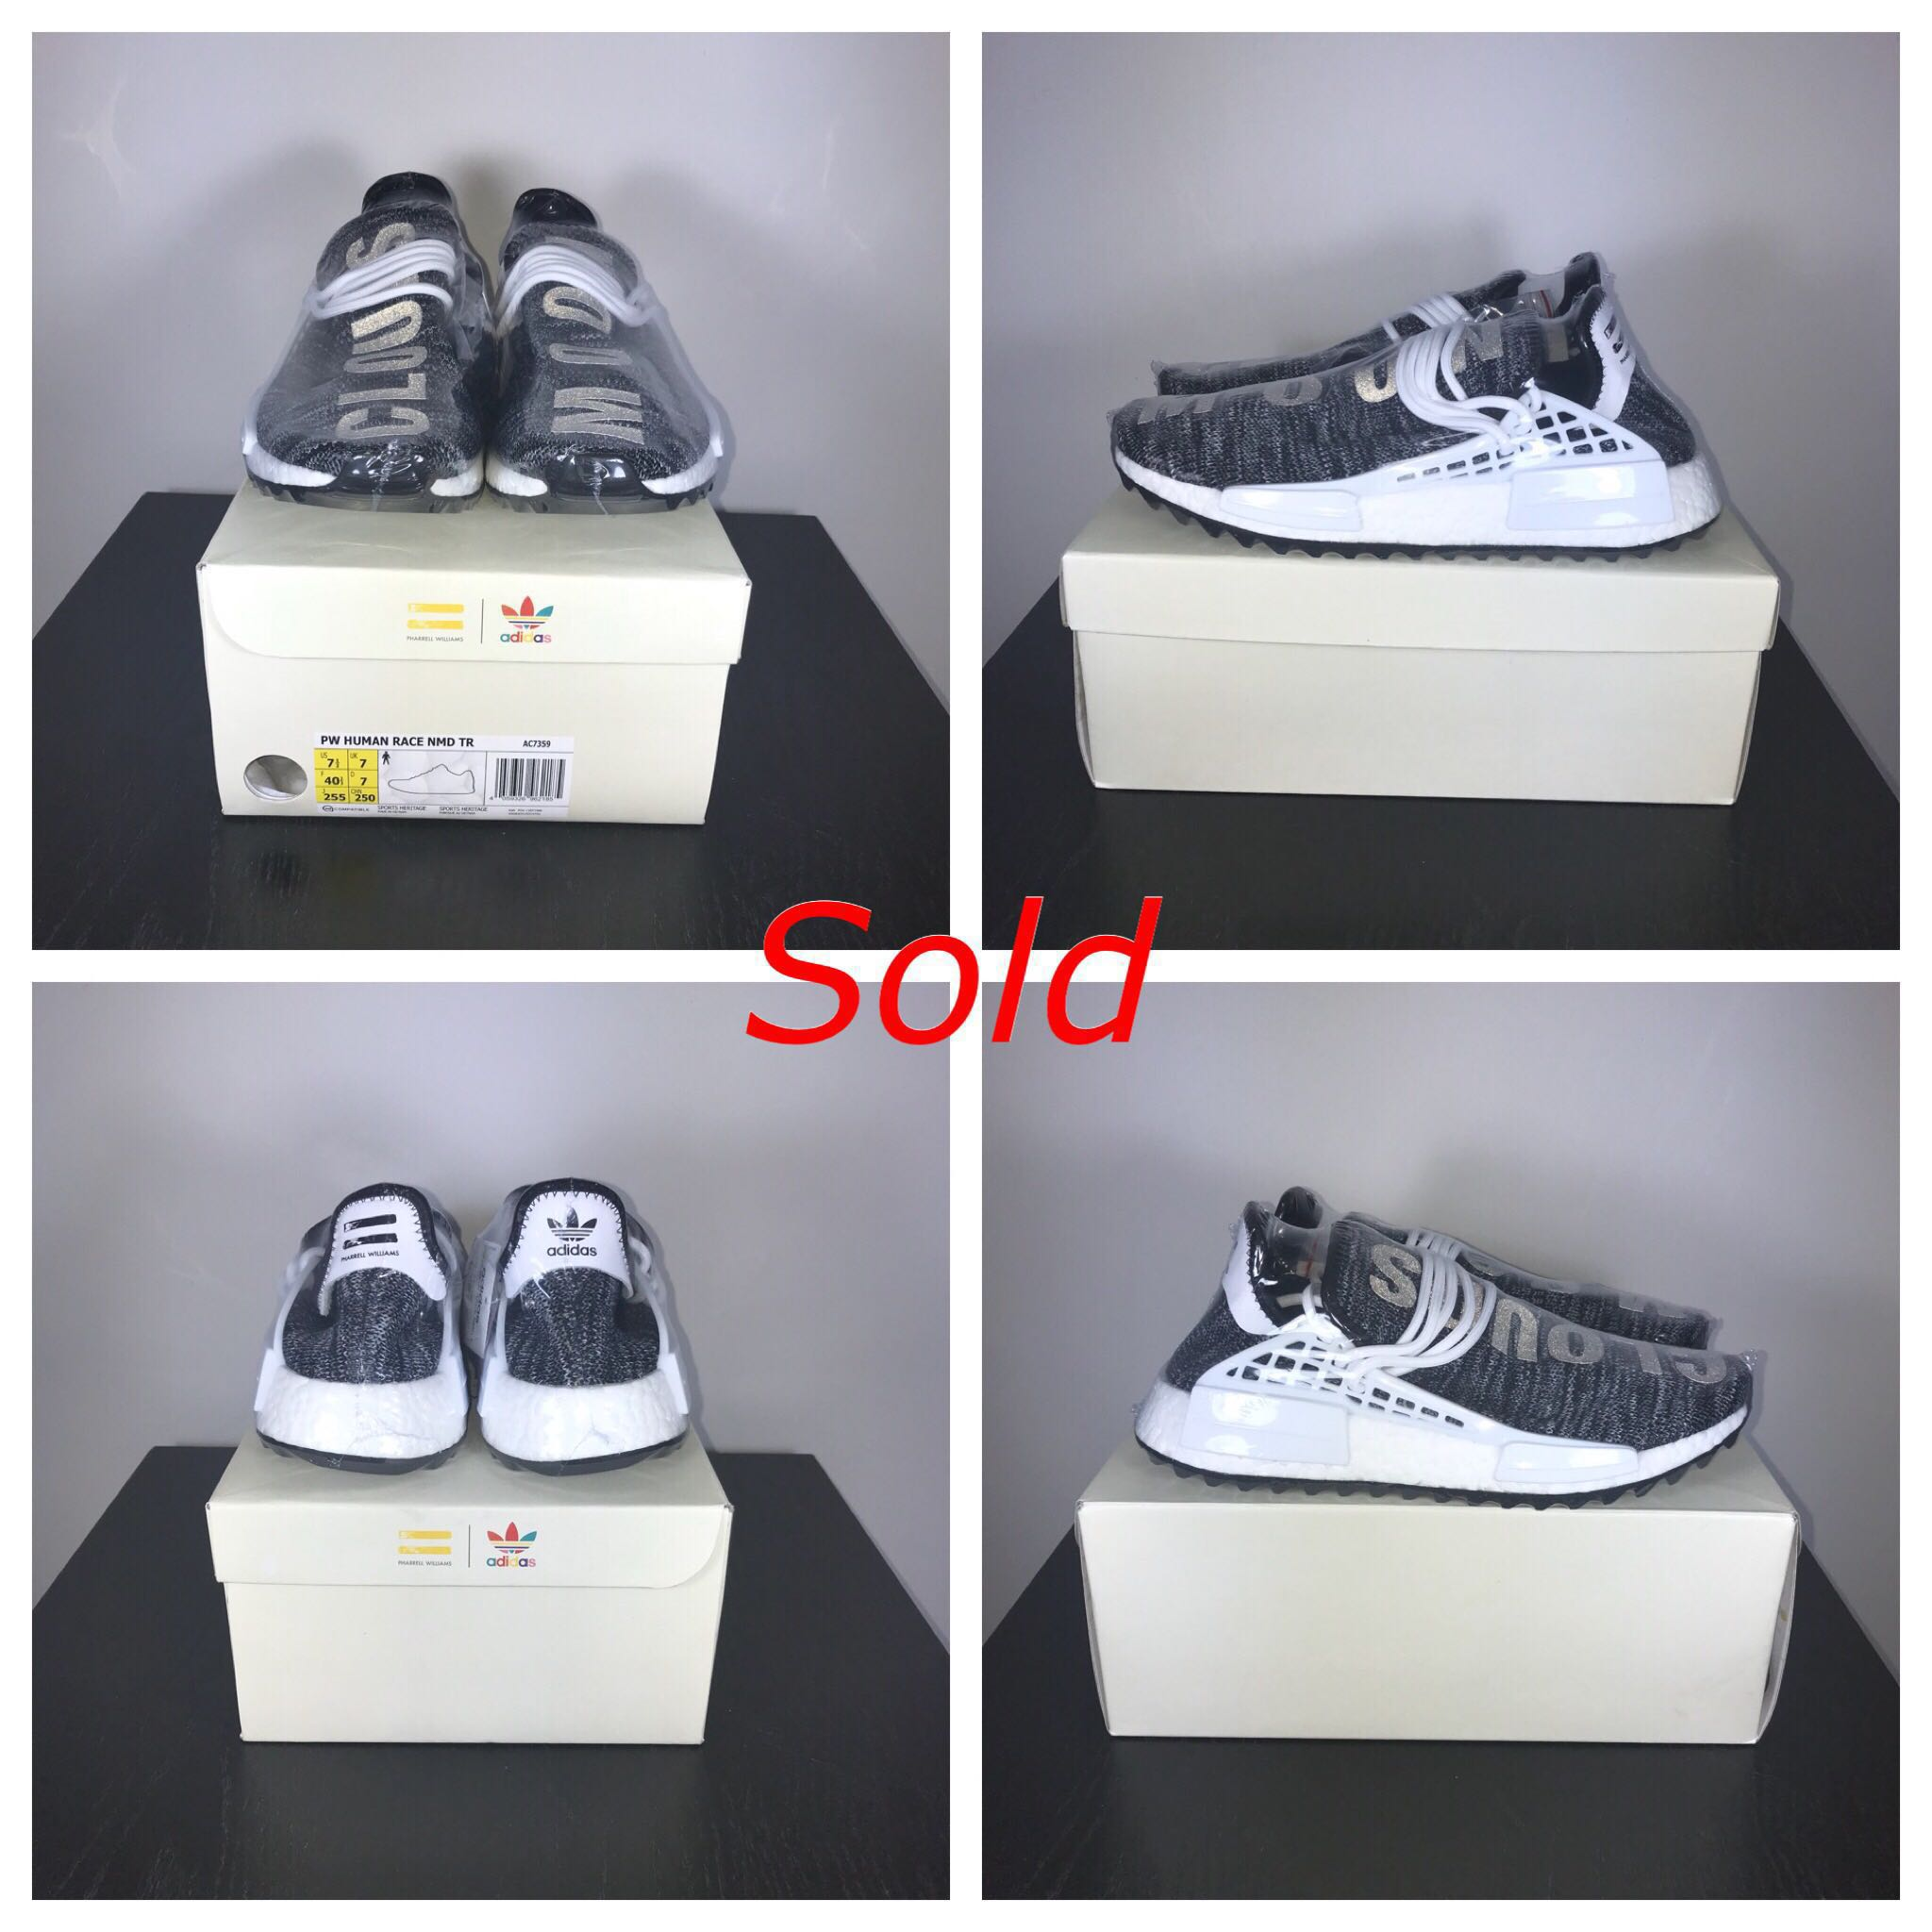 9675a1e7f907f Adidas - Ultra Boost Wood Wood KITH ATR NMD PW TR Pale Nude Oreo  Speedfactory AM4LA UK 7.5 - 8 US